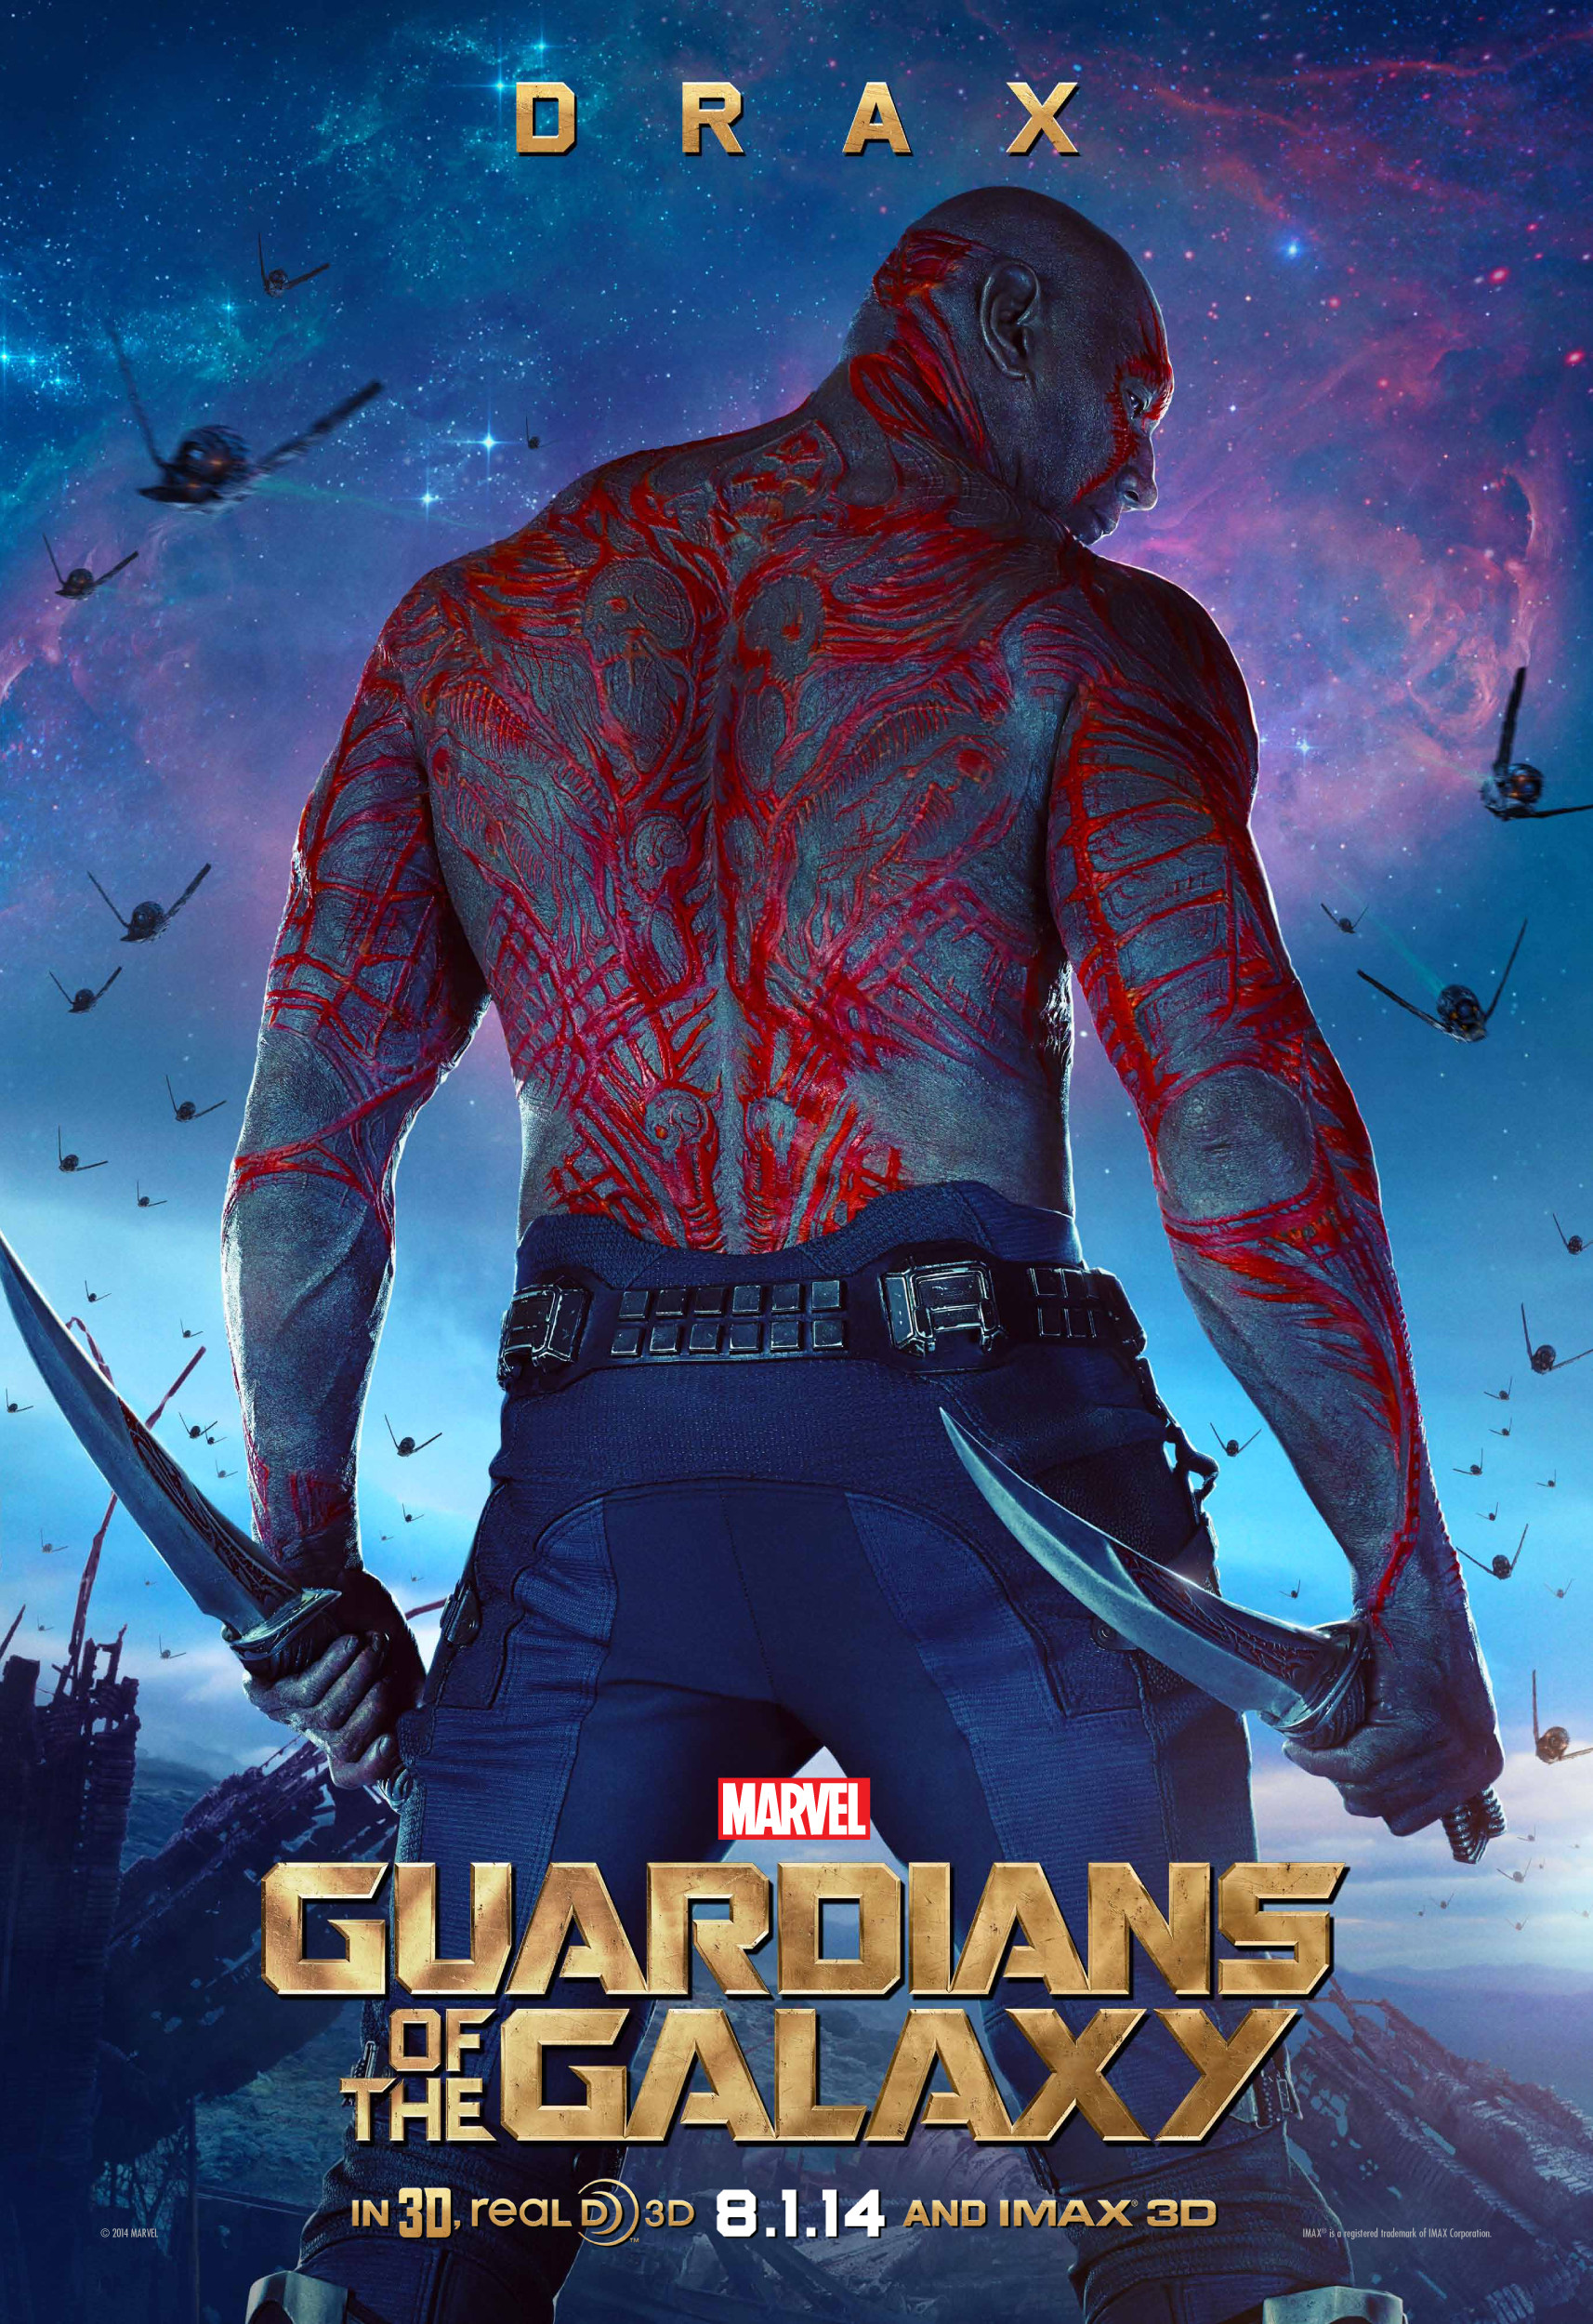 Ready for action in new character poster for guardians of the galaxy